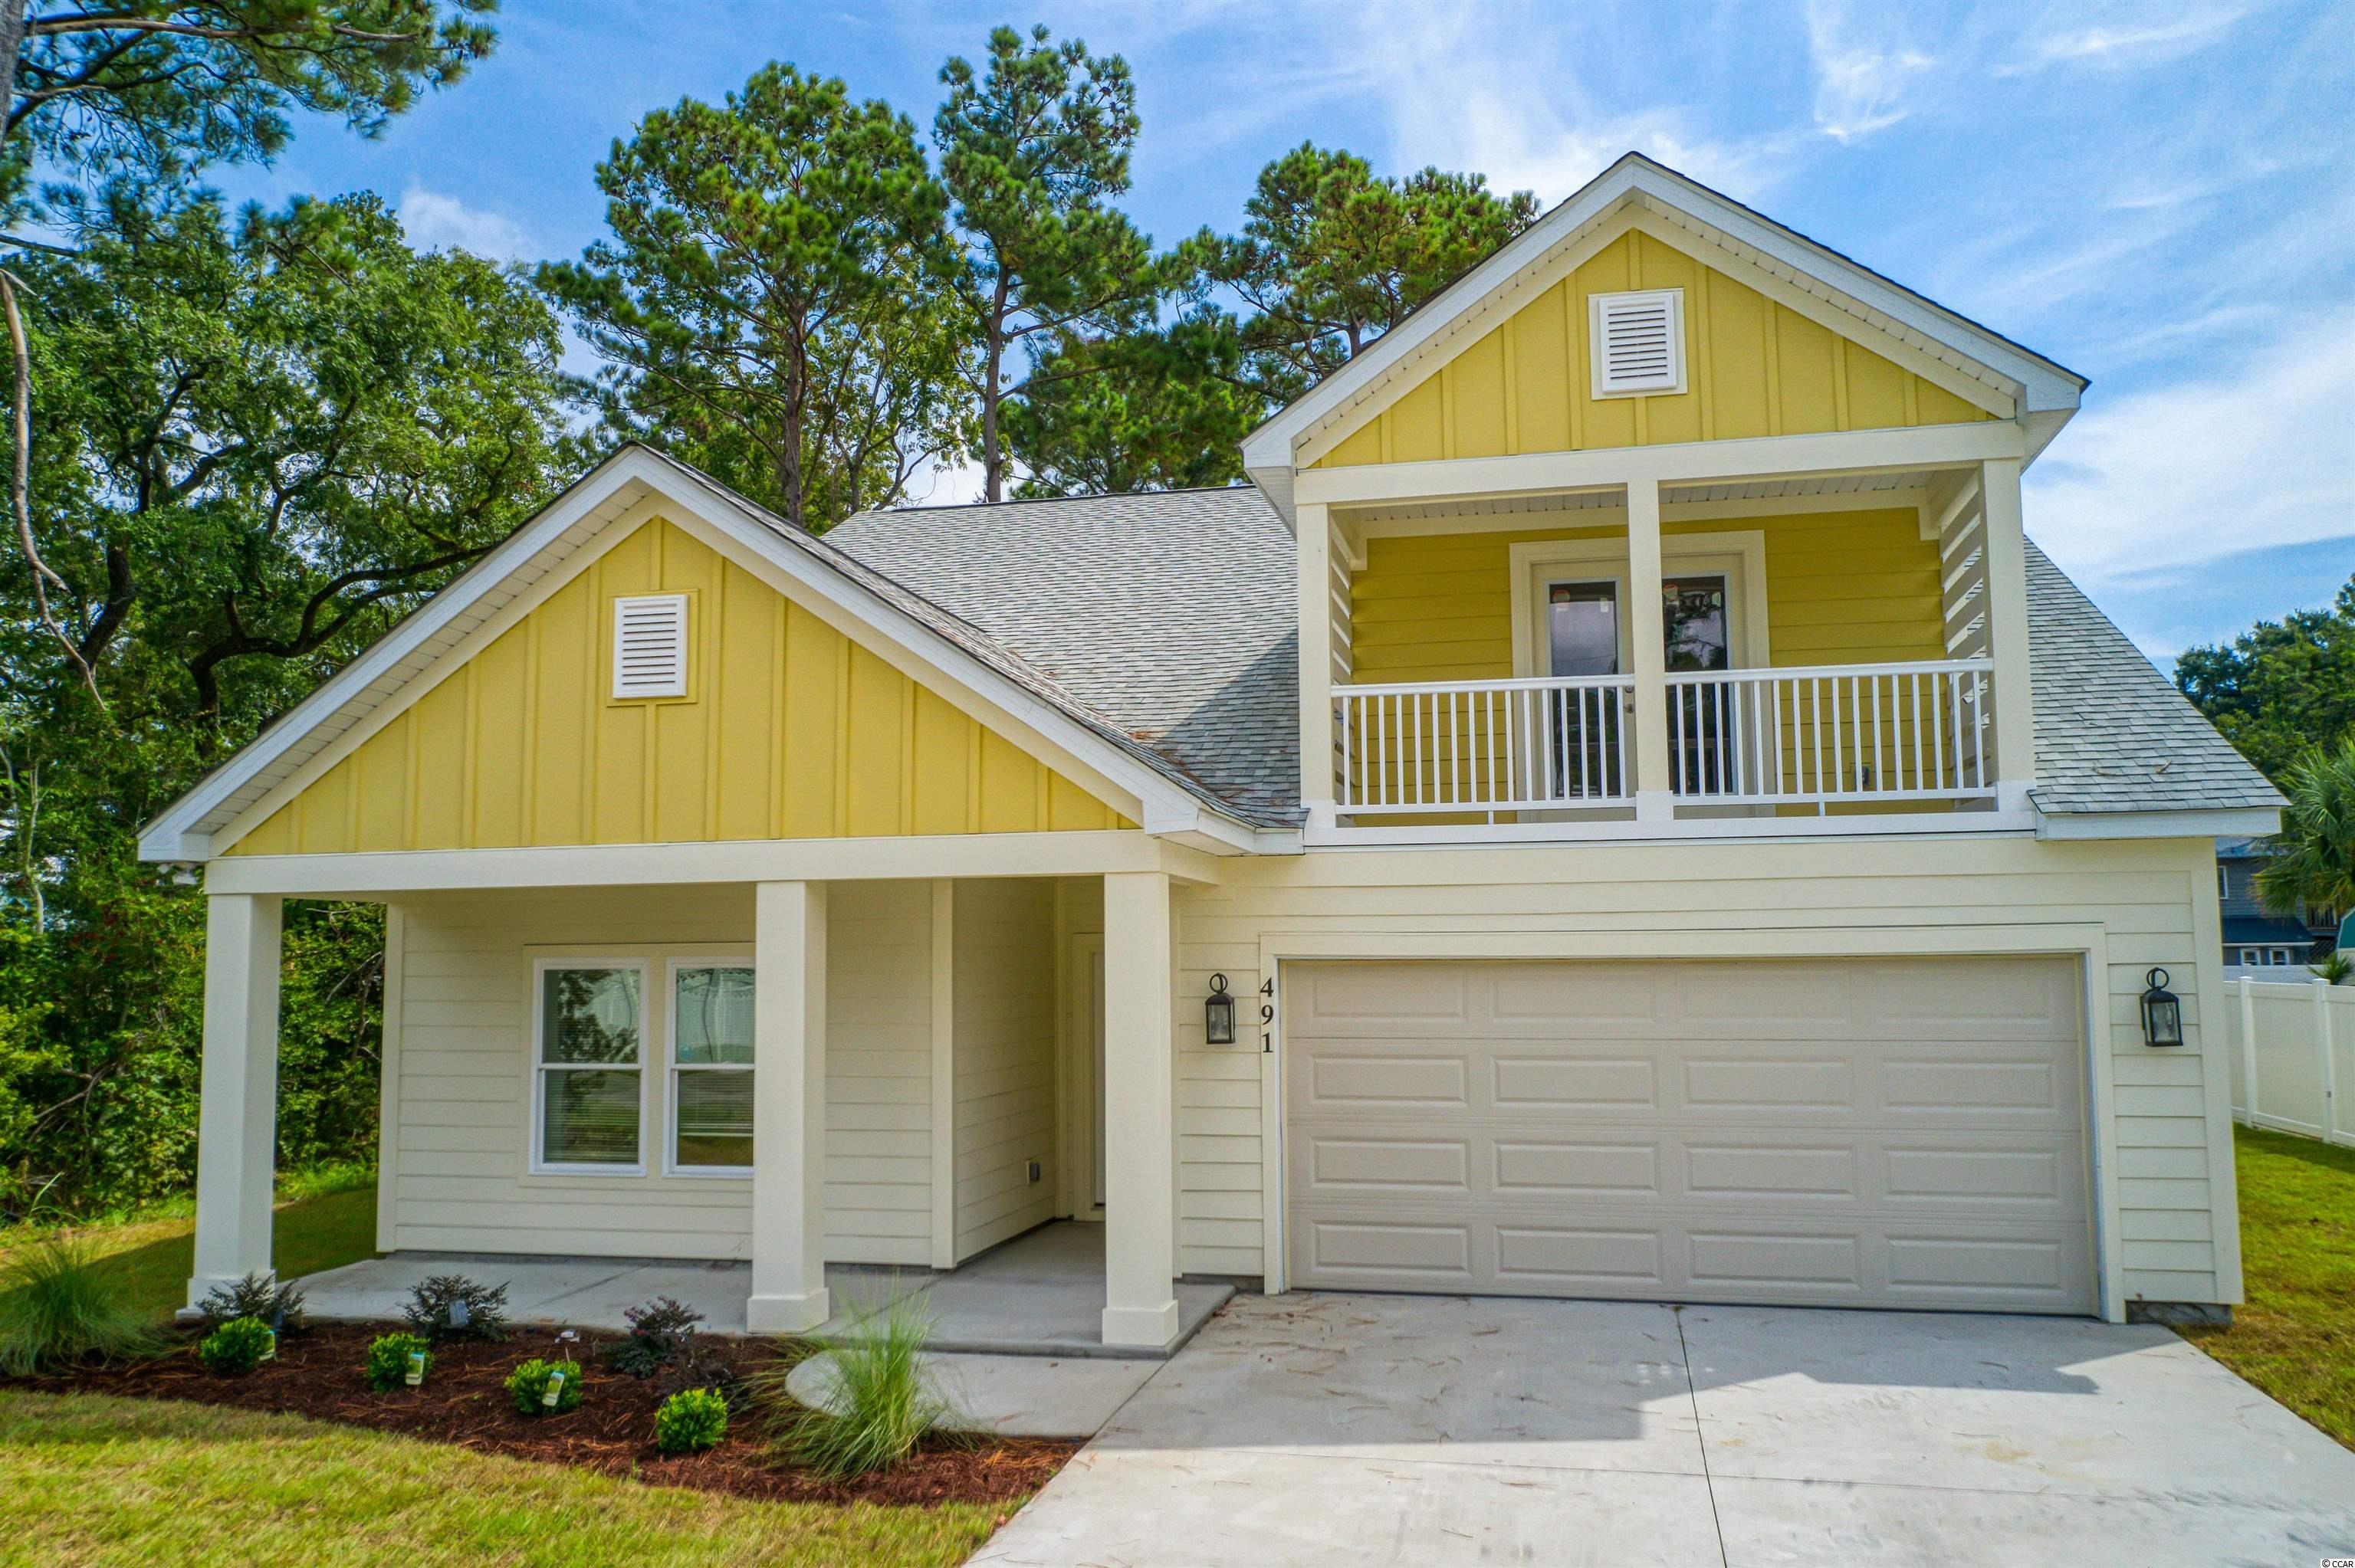 Rare Opportunity to Live East of 17 with a Short Golf Cart ride to Beautiful Pawleys Island Beach in a nice community with NO HOA fees. 491 Minnow Drive is a Like New 4 BR 2 Bath Split Level Home with a nice sized newly sodded yard that can easily hold a pool out back. You will love the LVP flooring, Oversized baseboards, Ceiling Fans, Beautiful White Kitchen Cabinets, New Granite Counters, and Stainless Steel Appliances. Family friendly Floor Plan with 3 BR's down and a Spacious Bonus Room/Man Cave over the garage with a nice Balcony view to enjoy the upcoming Fall Sunsets.  Big Dining room, Laundry room and Tray Ceiling in the Master BR. Big Screened in Back porch and 2 Car Garage. Convenient to everything- Dining, Grocery stores and Great restaurants! You make memories for a lifetime with ll the Opportunities to quickly enjoy everything Beautiful Pawleys Island has to offer; Creek fishing, crabbing and boating! Kayaking, Paddleboarding, surfing and of course the Beach! Take a morning run or bike ride and 7 Golf Courses are within 3 miles. Best of all no HOA's in this quiet community! This one won't last long so don't delay and grab your piece of Pawleys today!